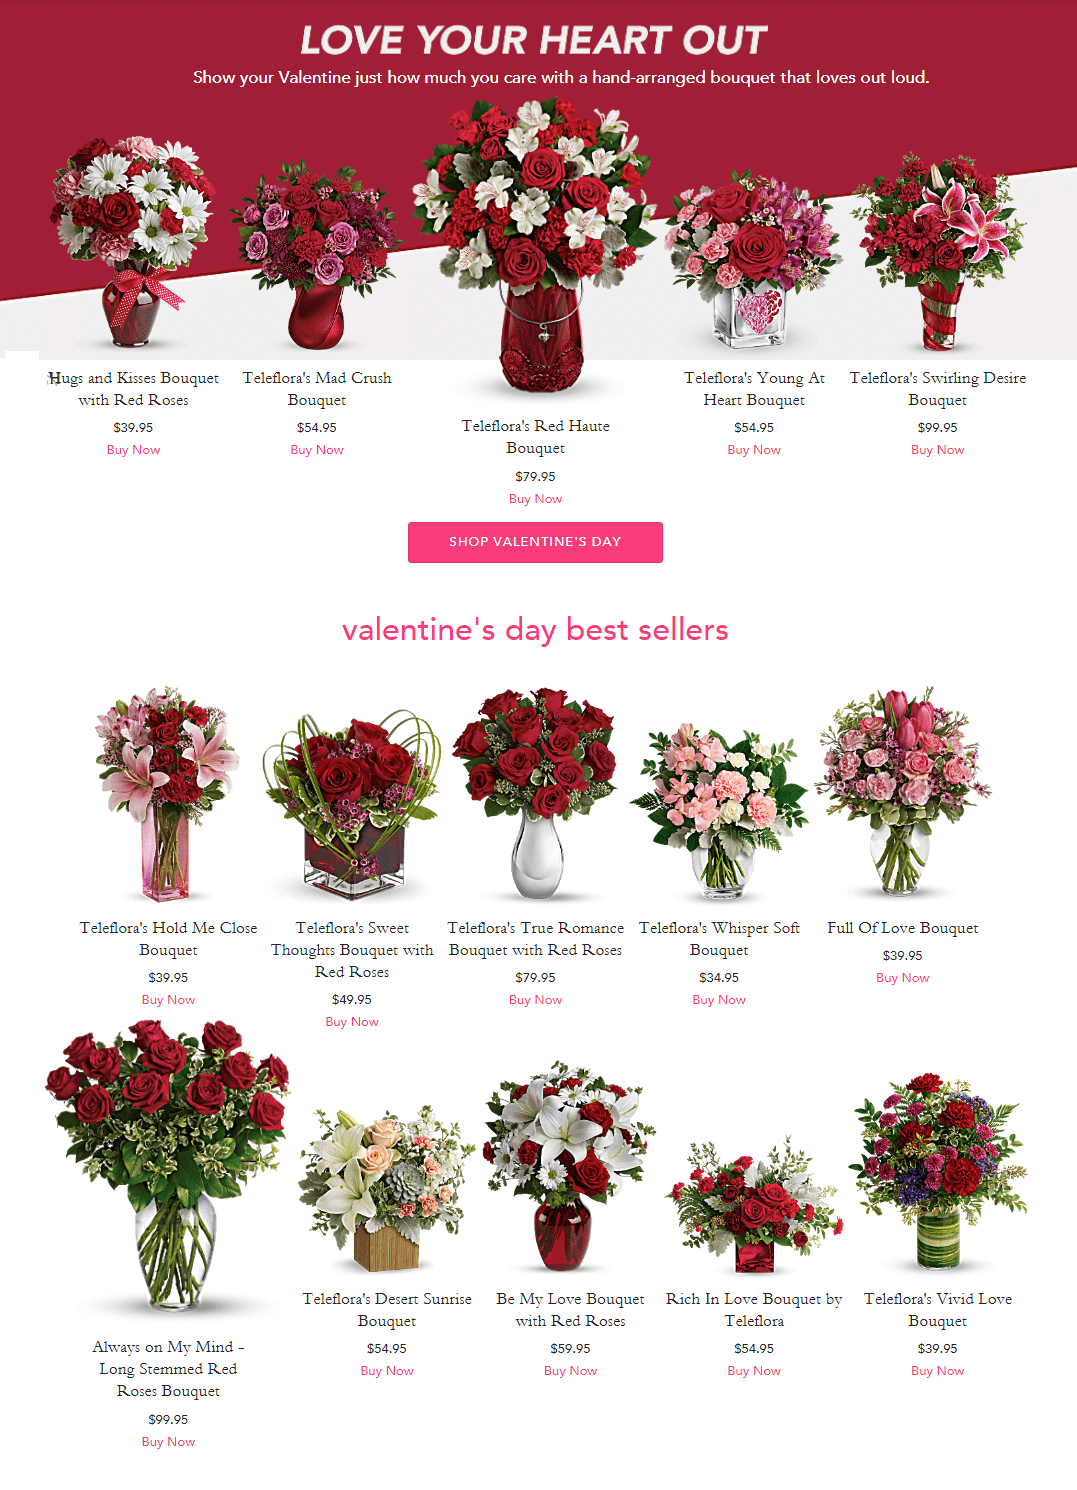 Valentine's Day Flowers from Teleflora for Out-of-town